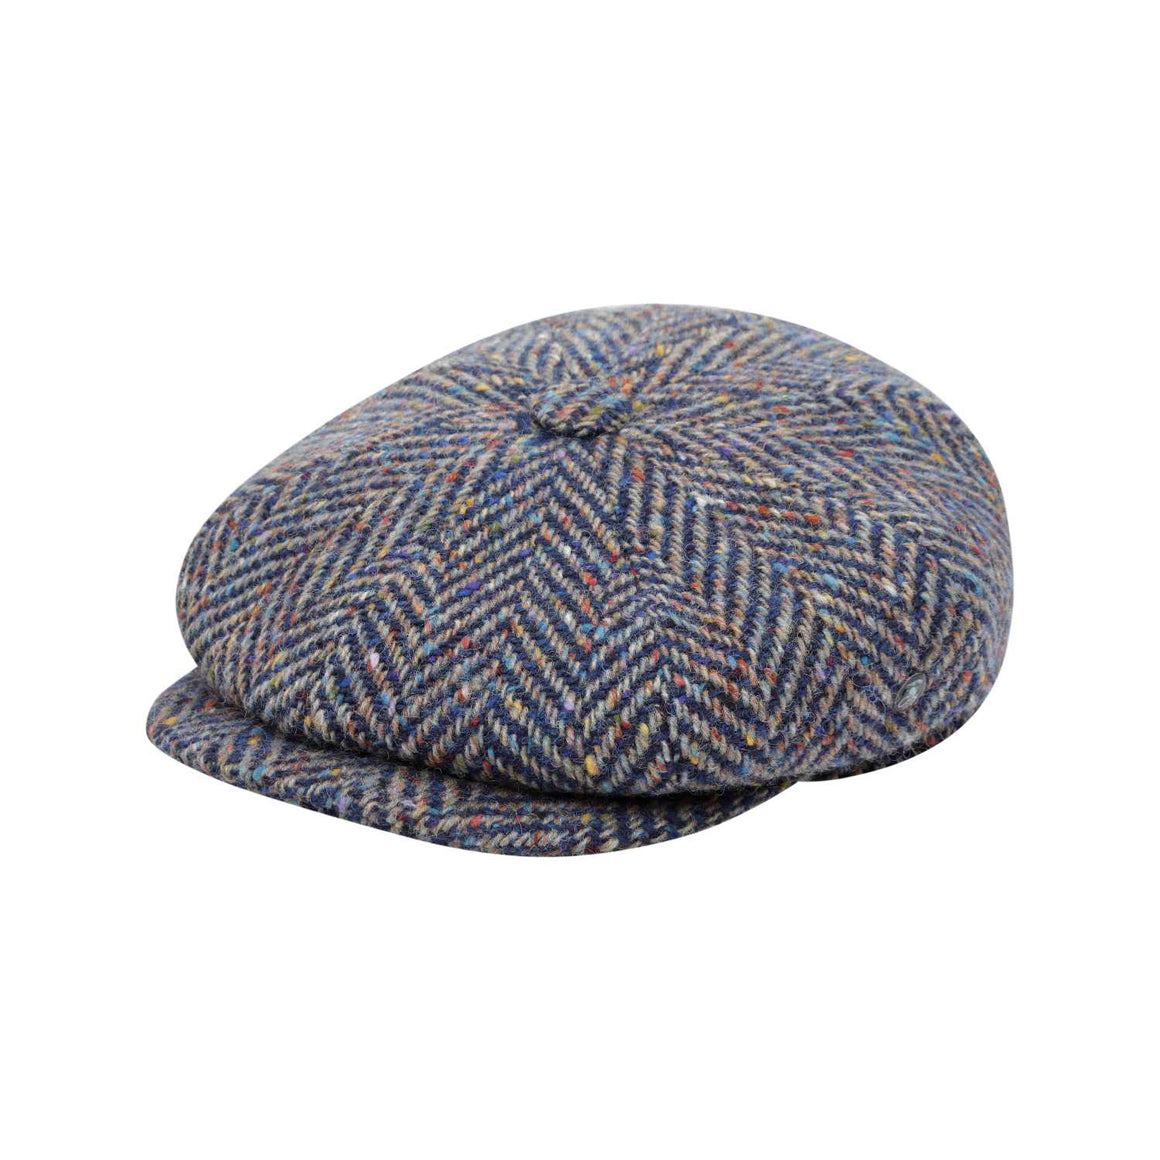 The Cashmere Choice - City Sport - Donegal Tweed 8 Piece Baker Boy Cap - Speckled Herringbone 3454